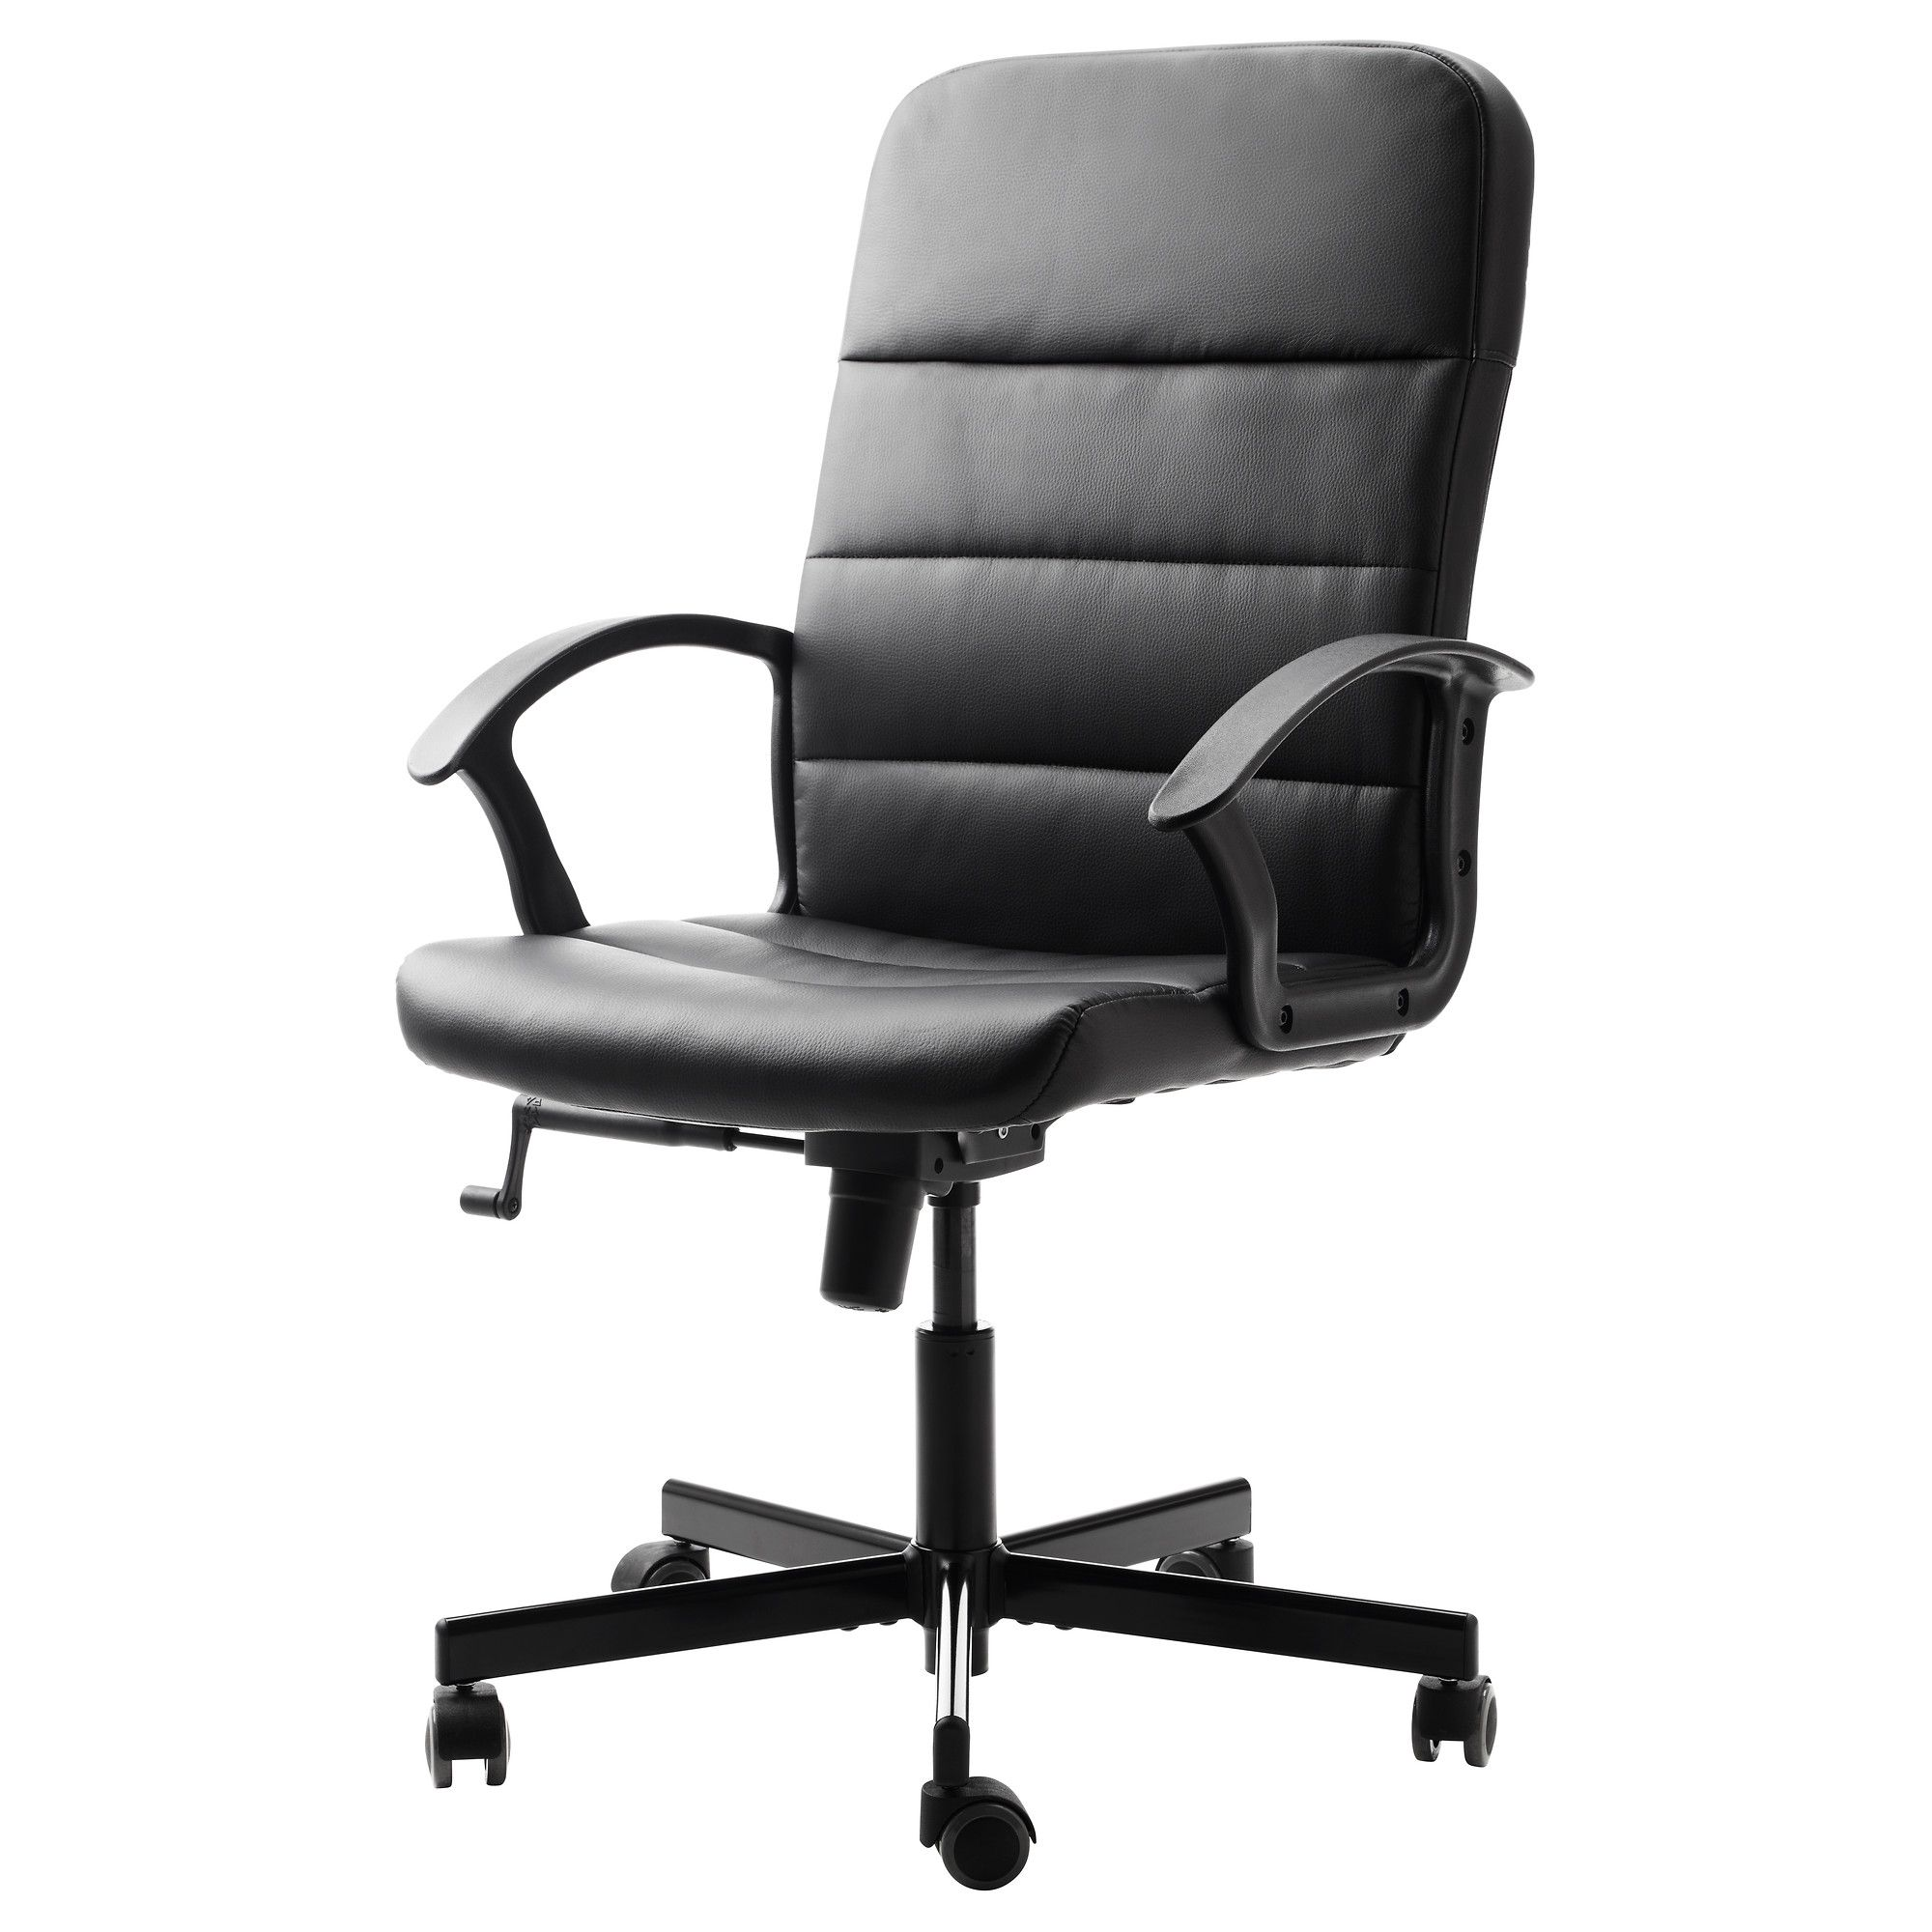 US Furniture and Home Furnishings Ikea office chair